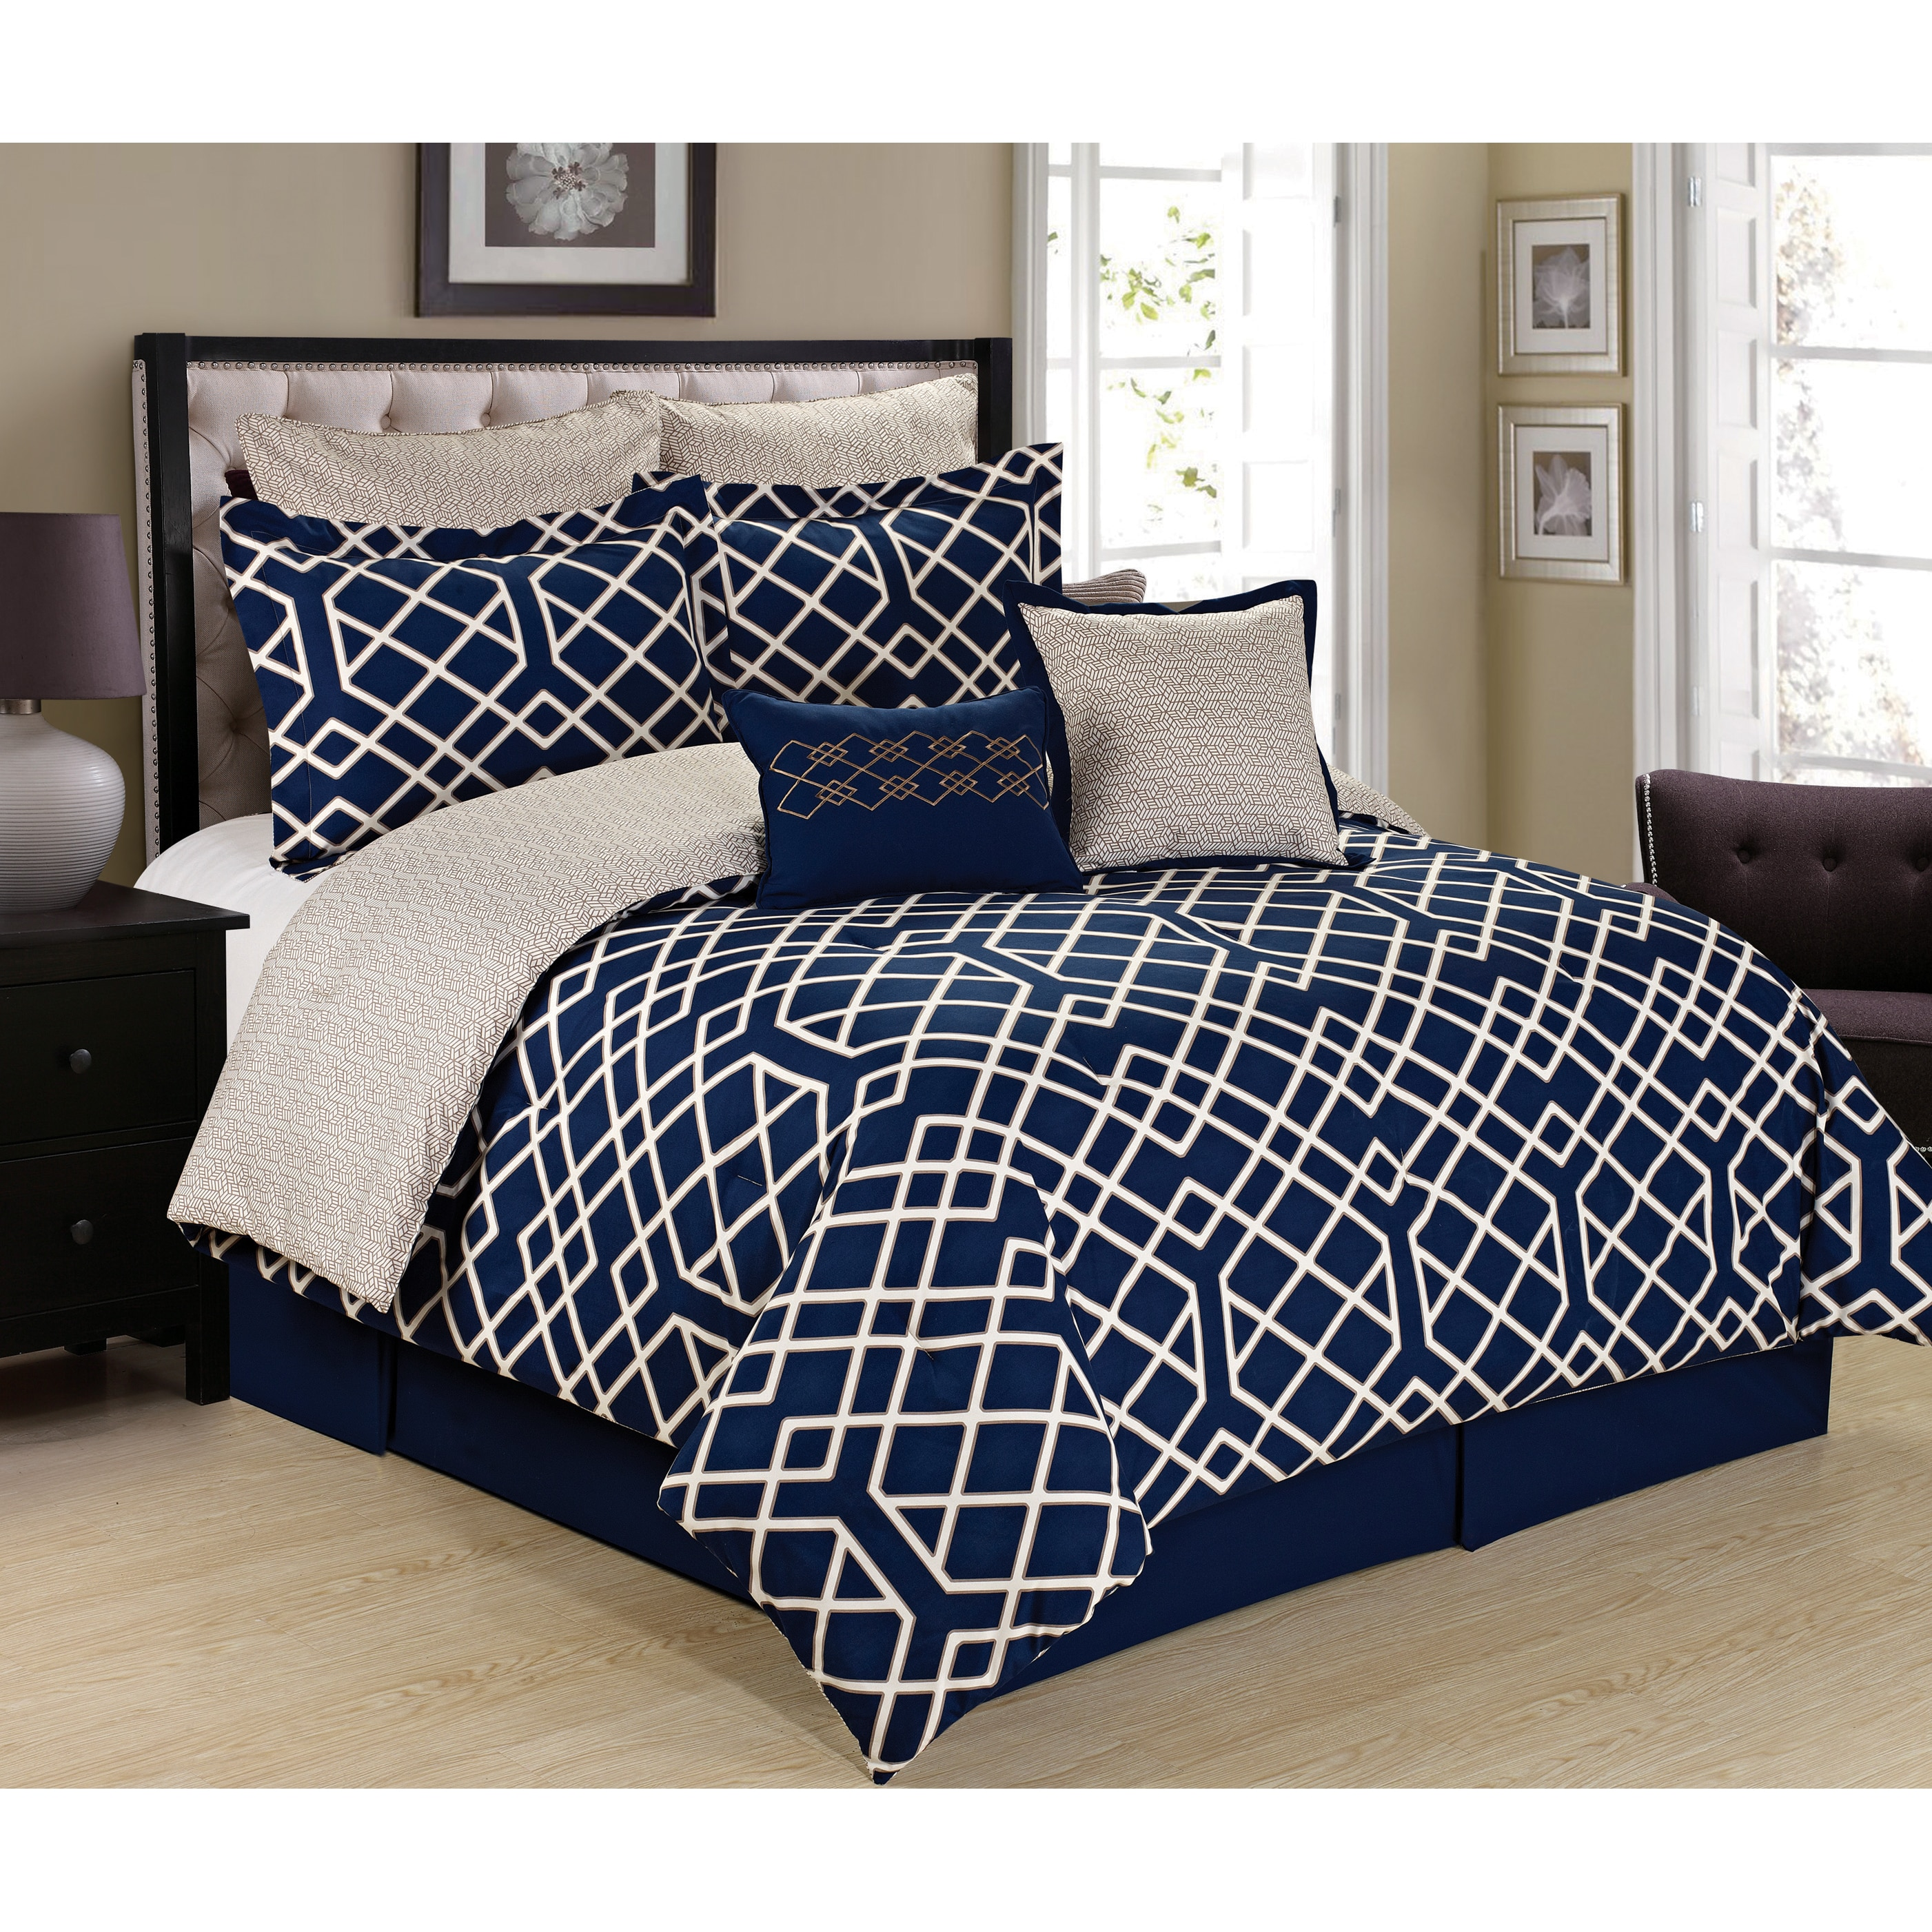 queen cheap unbeatable trellis cover top alluring full high your light as and comforter decoramusing set brown combine size finesse canada cotton home duvet blue teal jysk king capri of sets doona covers decor grey red with comforters duvets amusing definition double twin black white